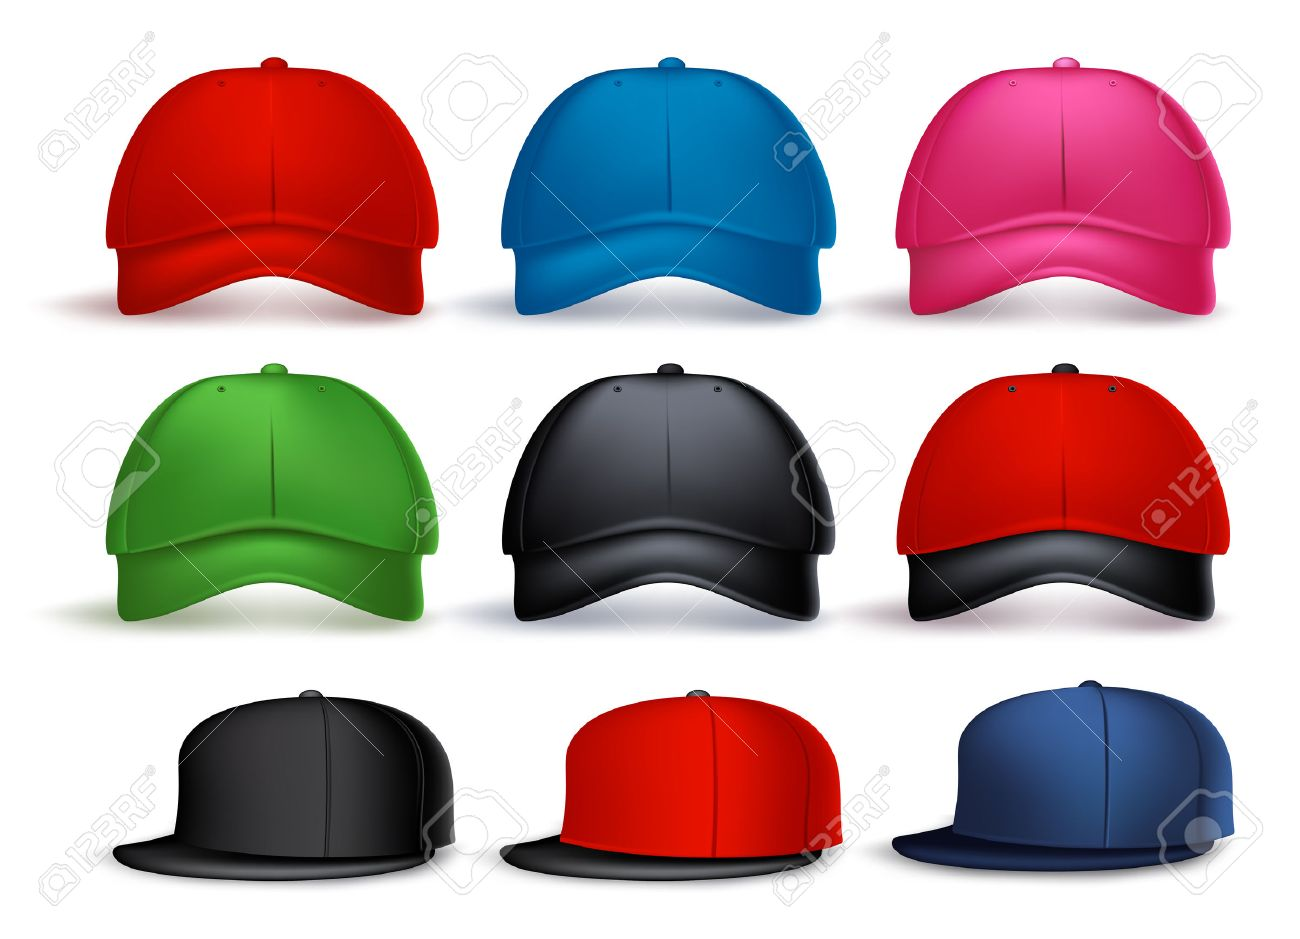 Set of 3D Realistic Baseball Cap for Man and Woman with Variety of Colors Isolated in White Background. Vector Illustration - 43950072